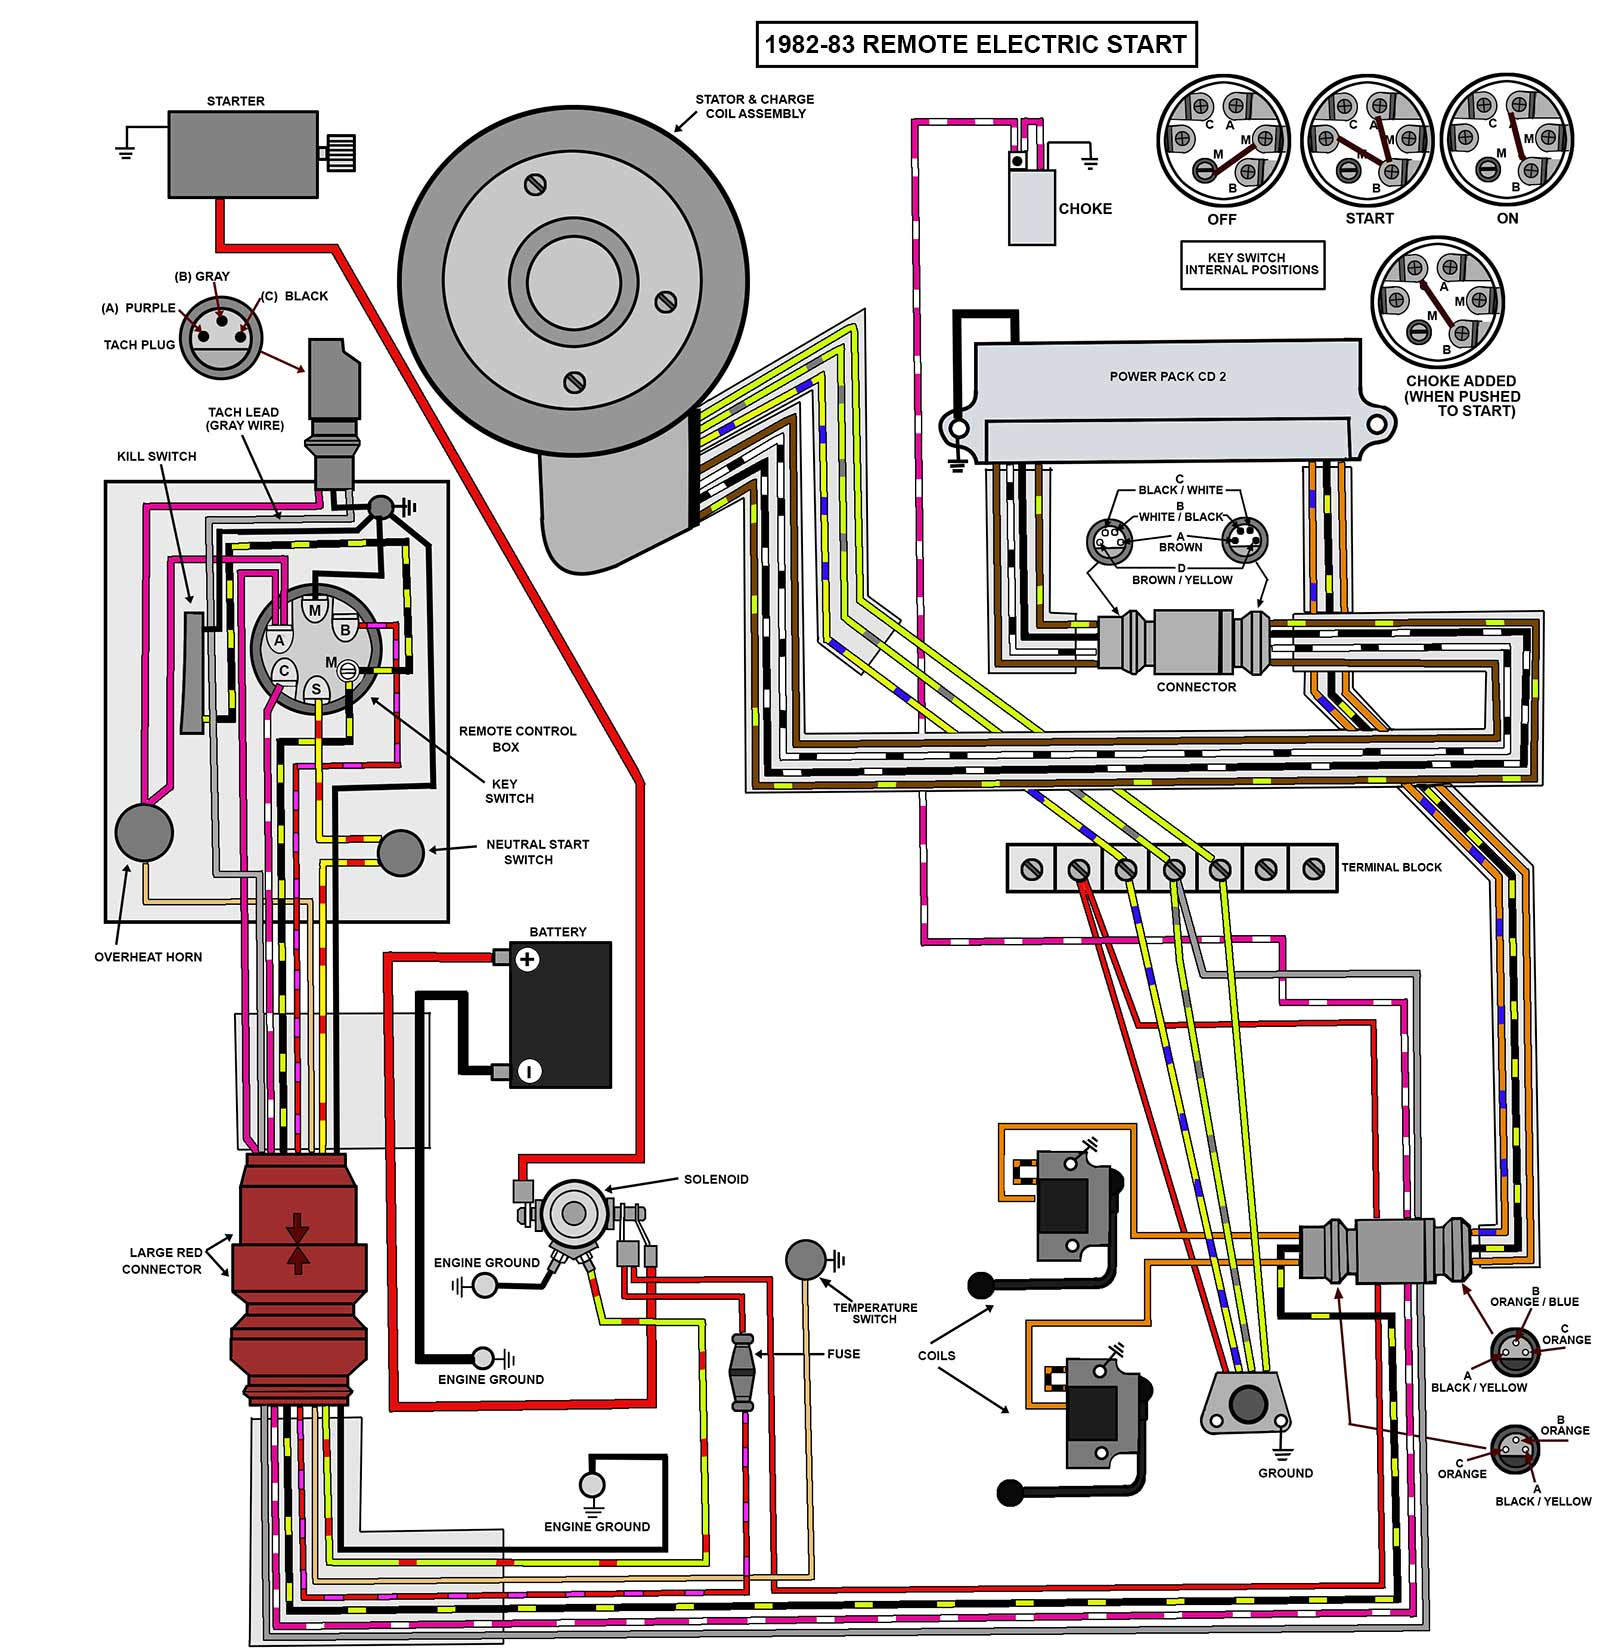 25_35_82 83_elec remote mastertech marine evinrude johnson outboard wiring diagrams Yamaha Outboard Schematic Diagram at pacquiaovsvargaslive.co